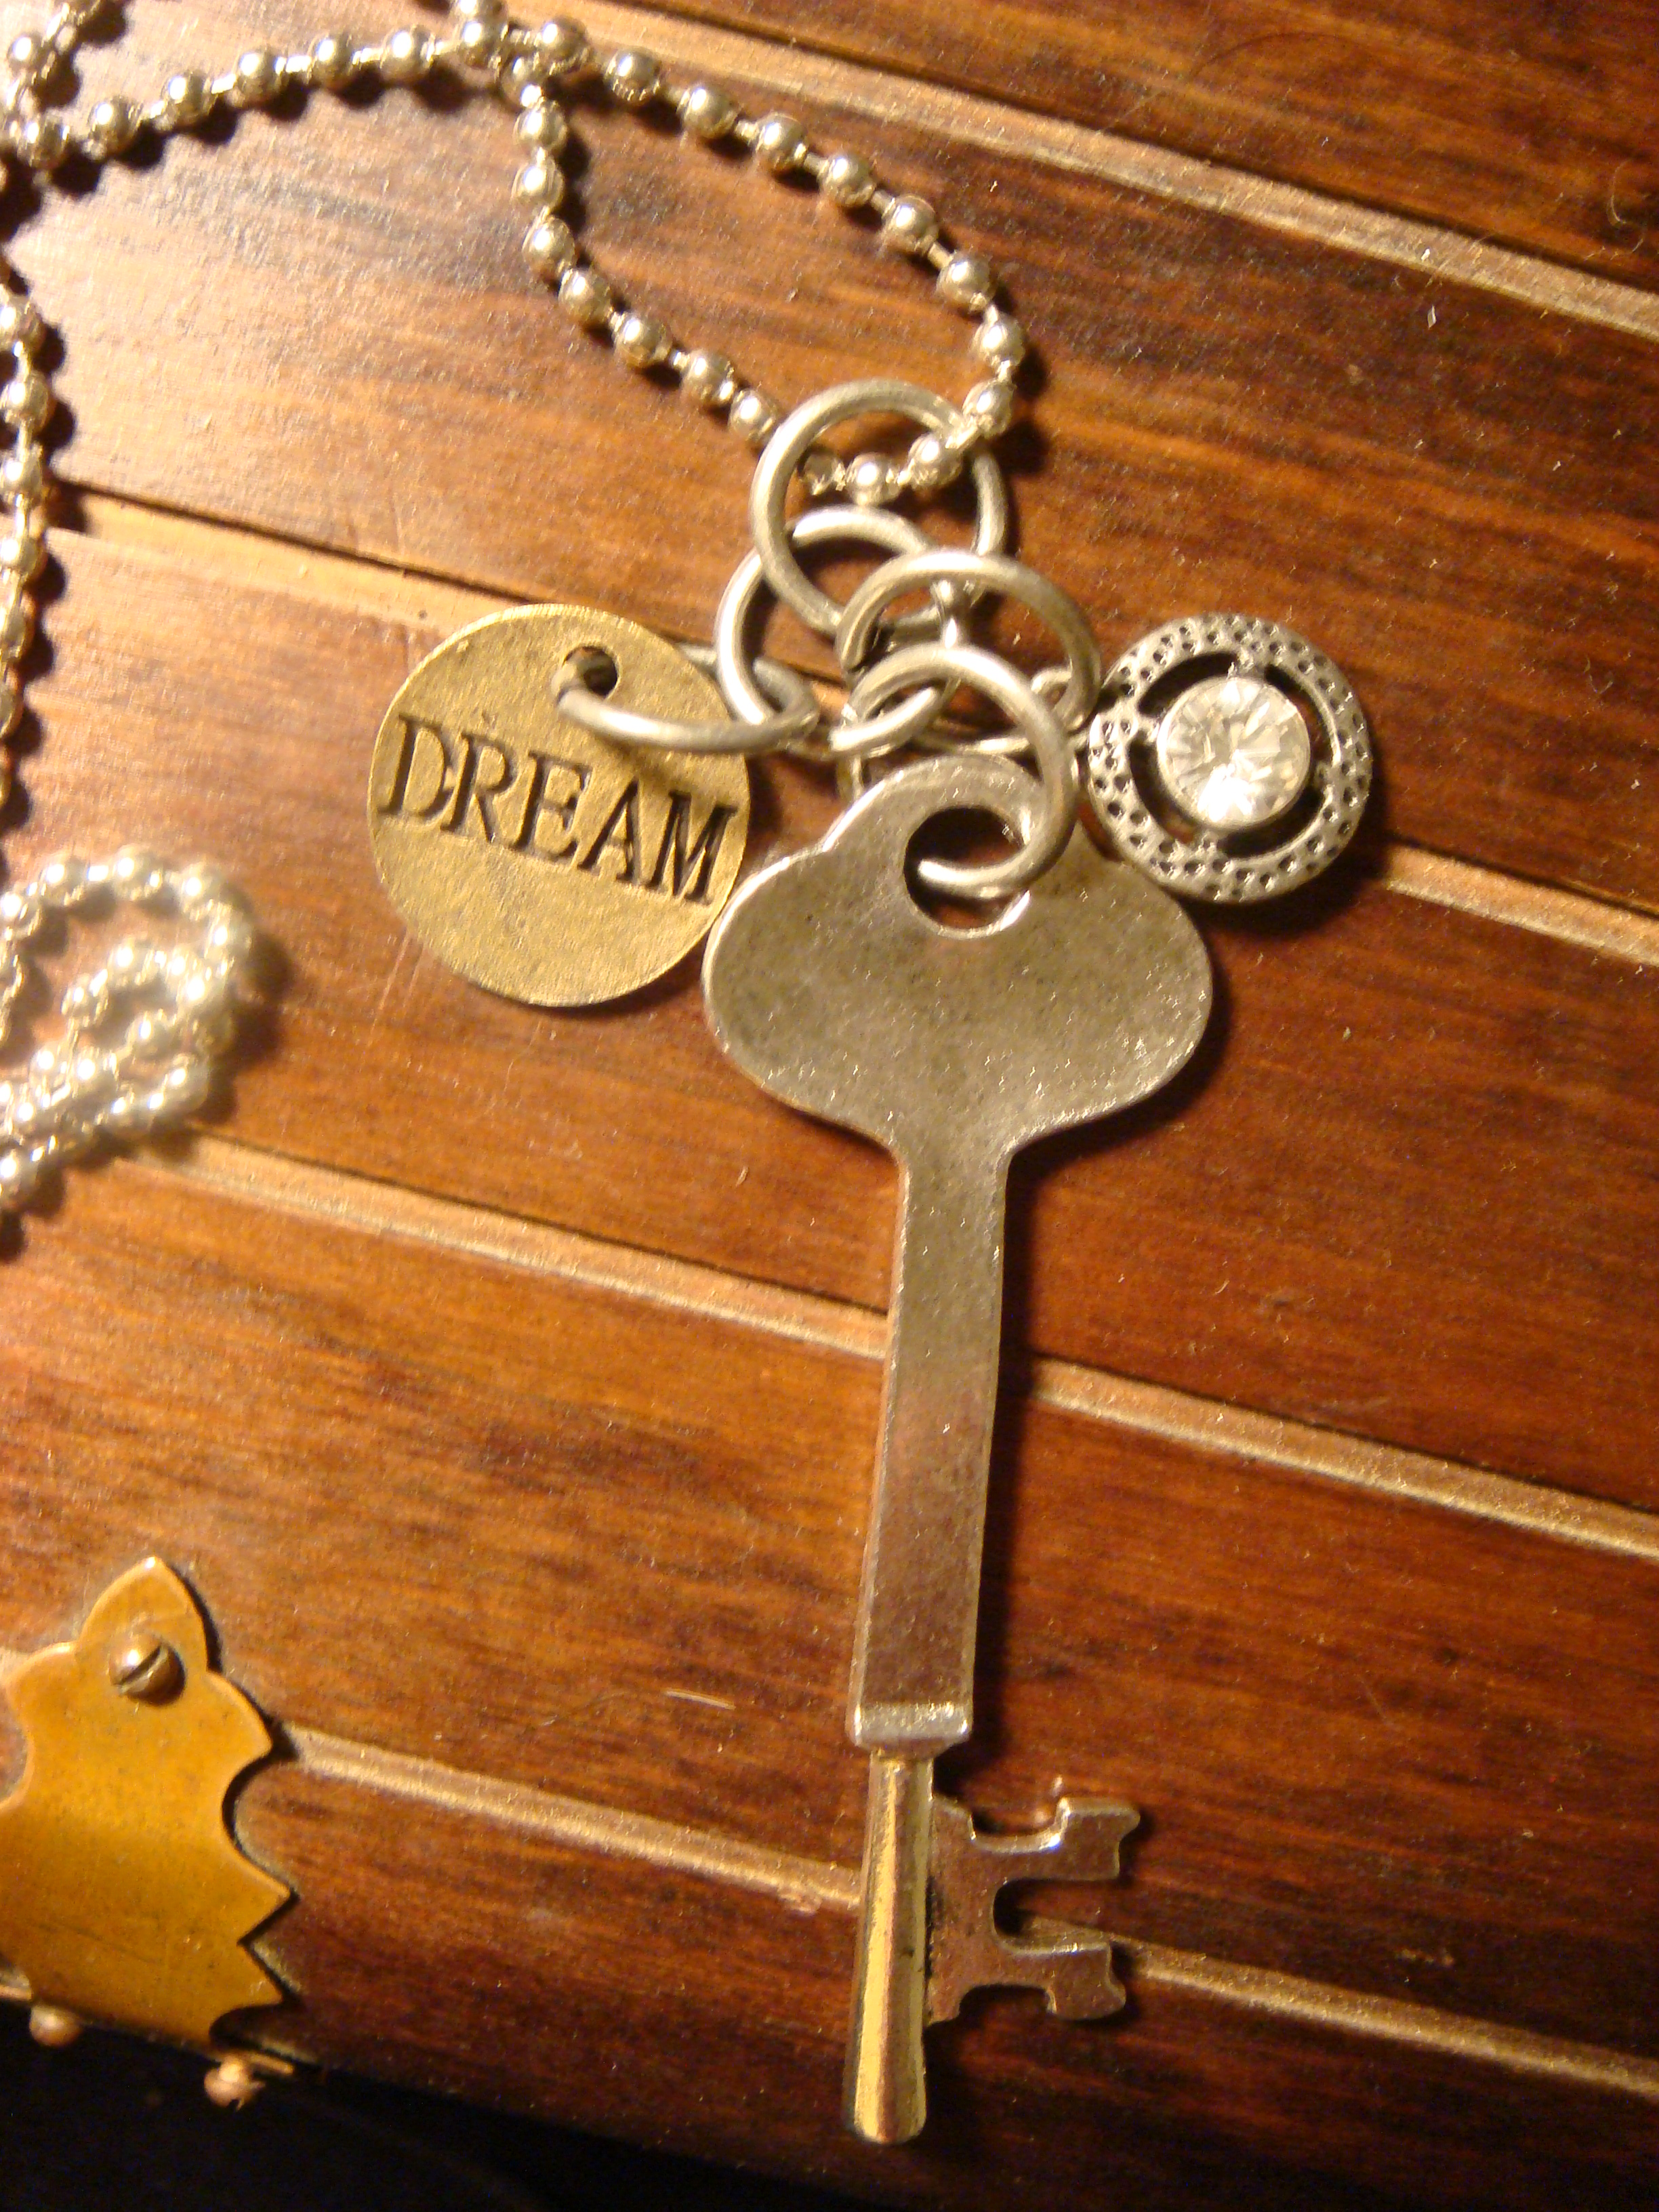 steampunk_skeleton_key_dream_jewel_necklace_necklaces_2.JPG